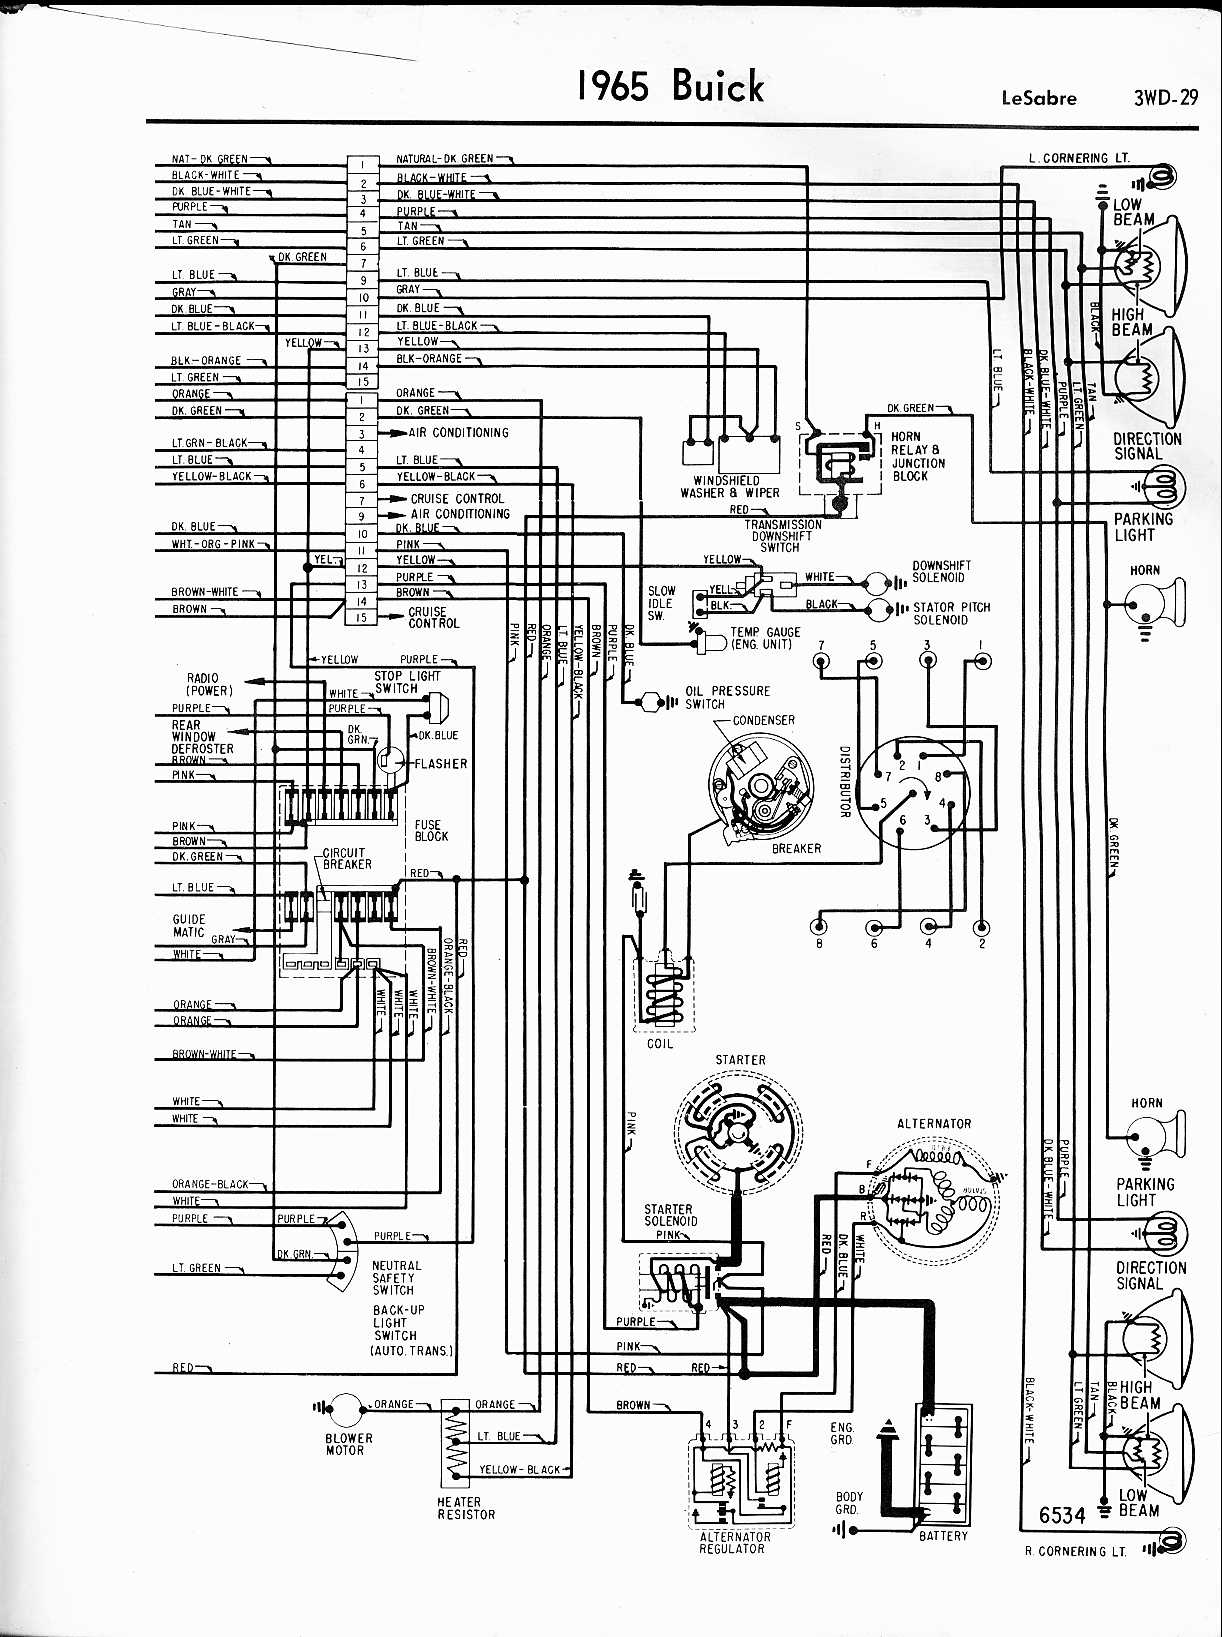 1960 Impala Wiring Diagram With Alternator Library